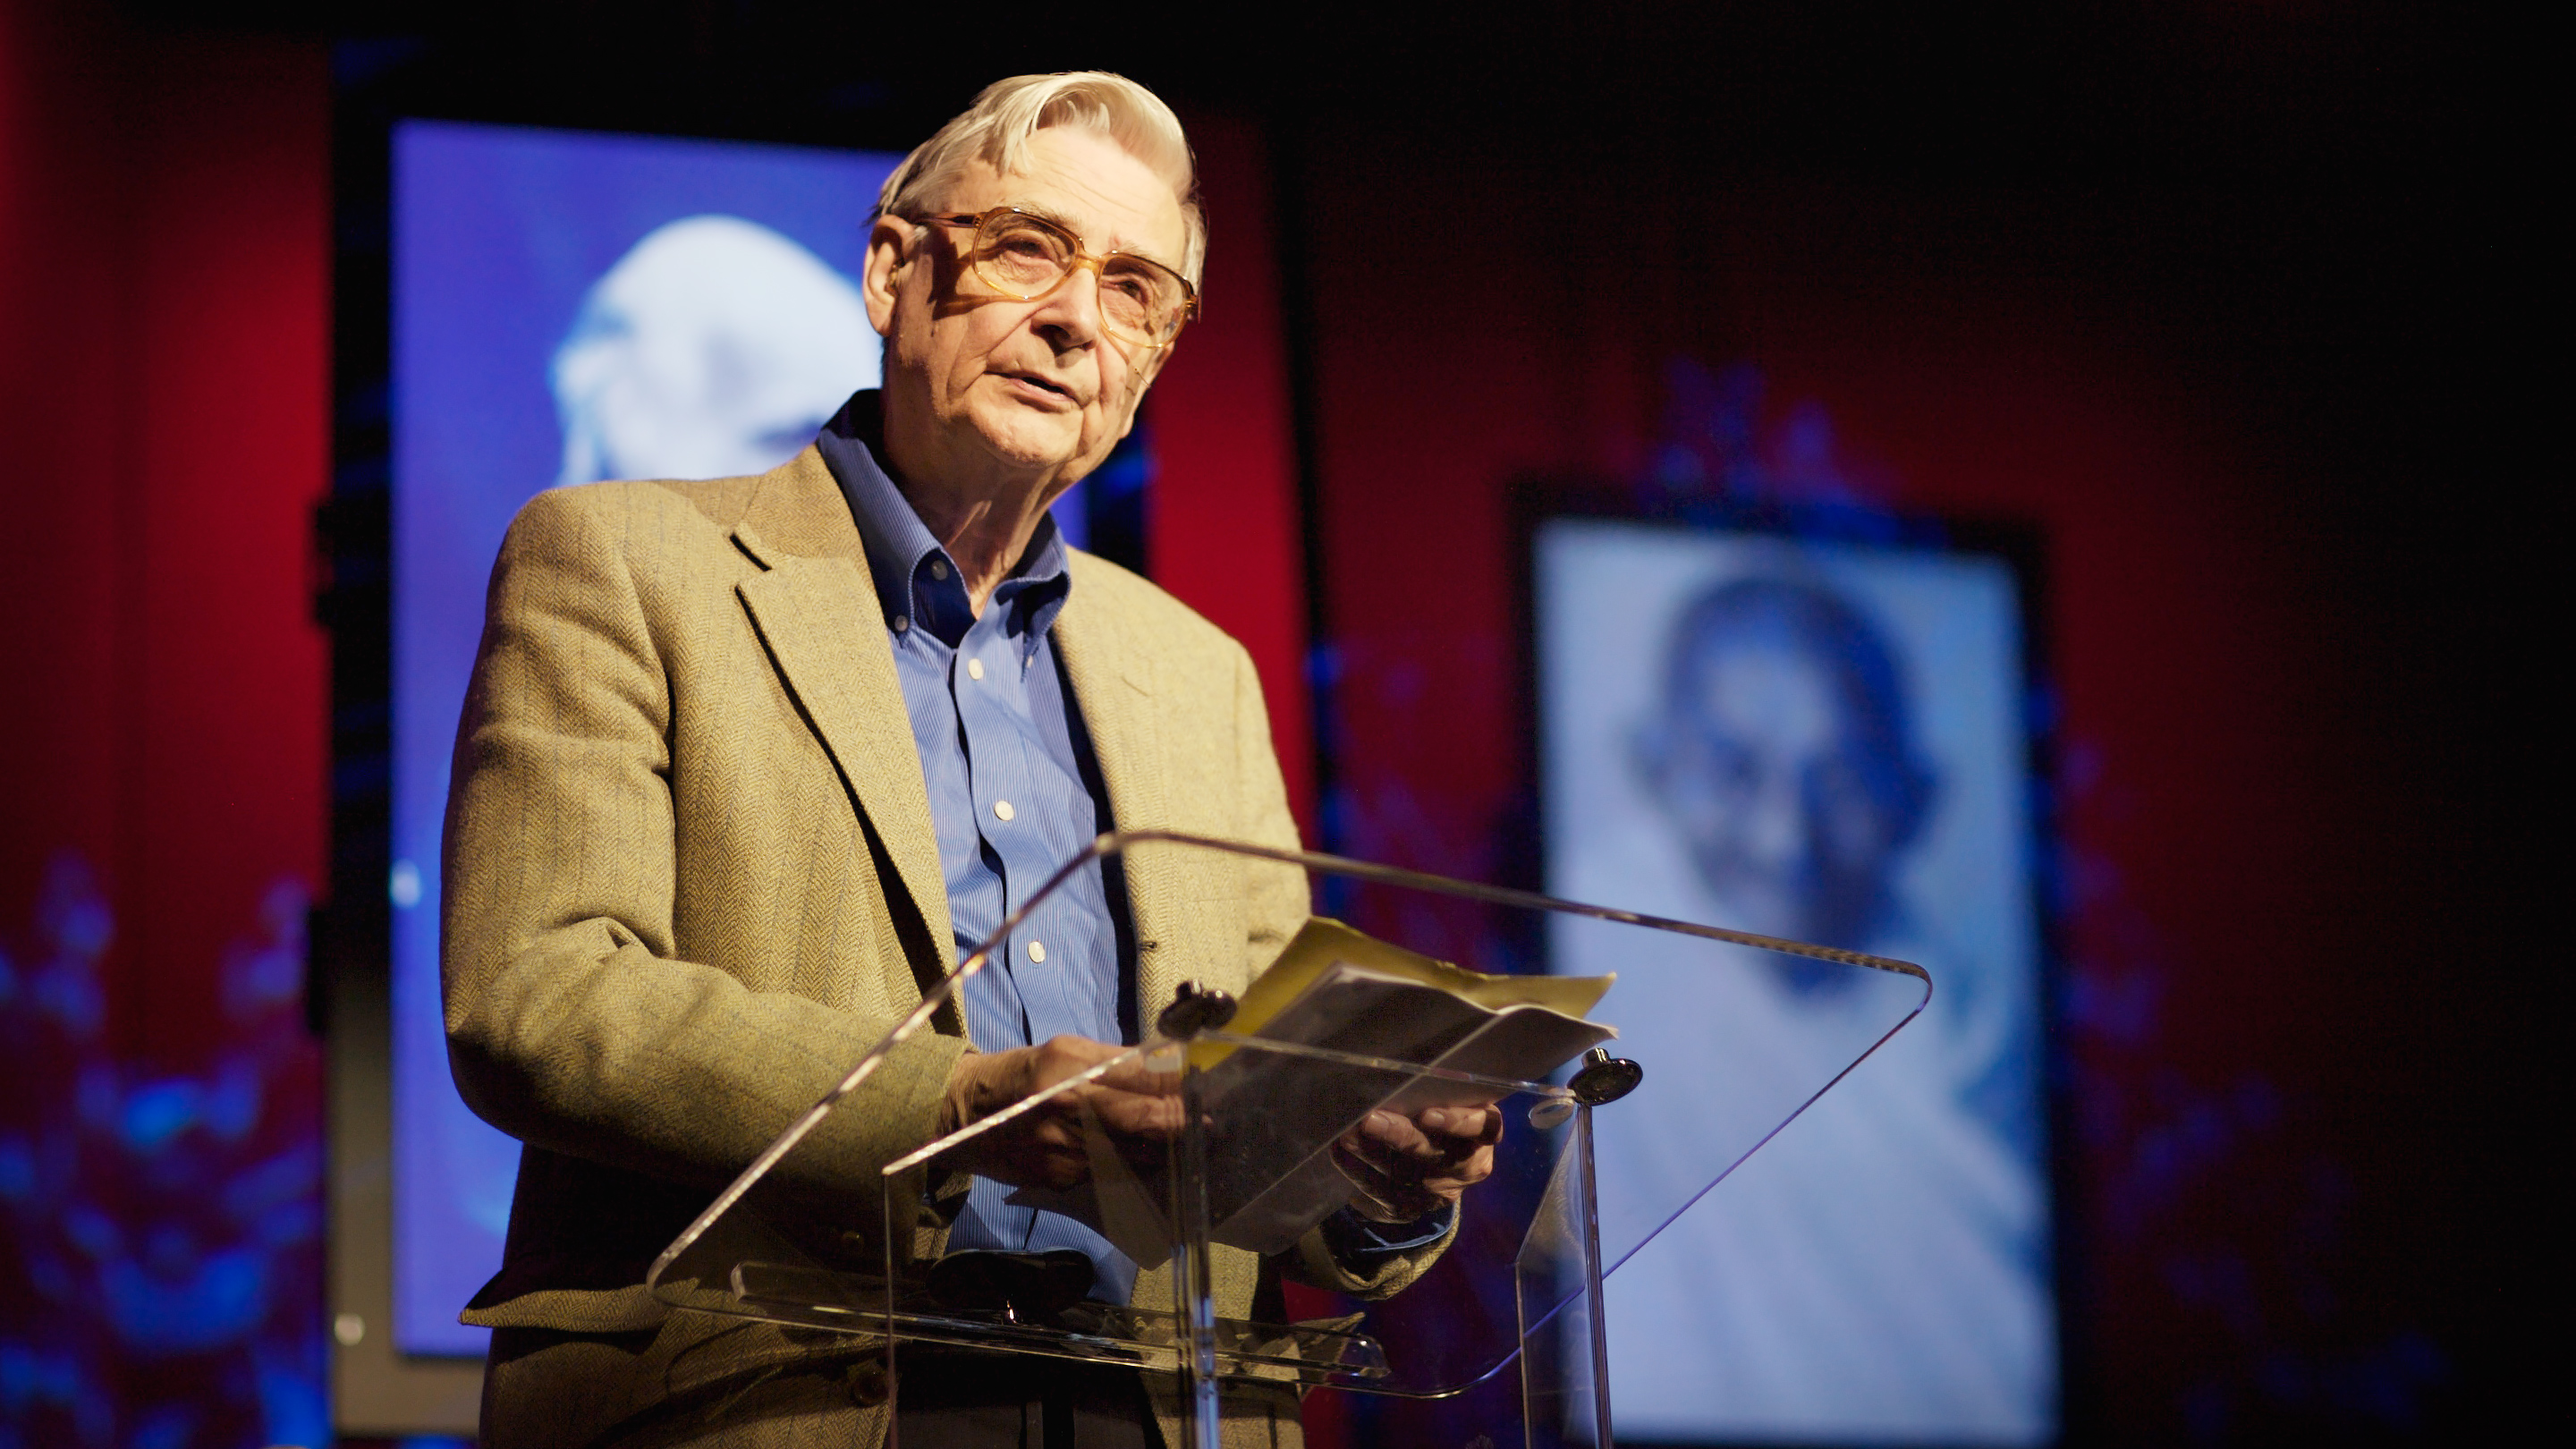 E.O. Wilson: My wish: Build the Encyclopedia of Life | TED Talk